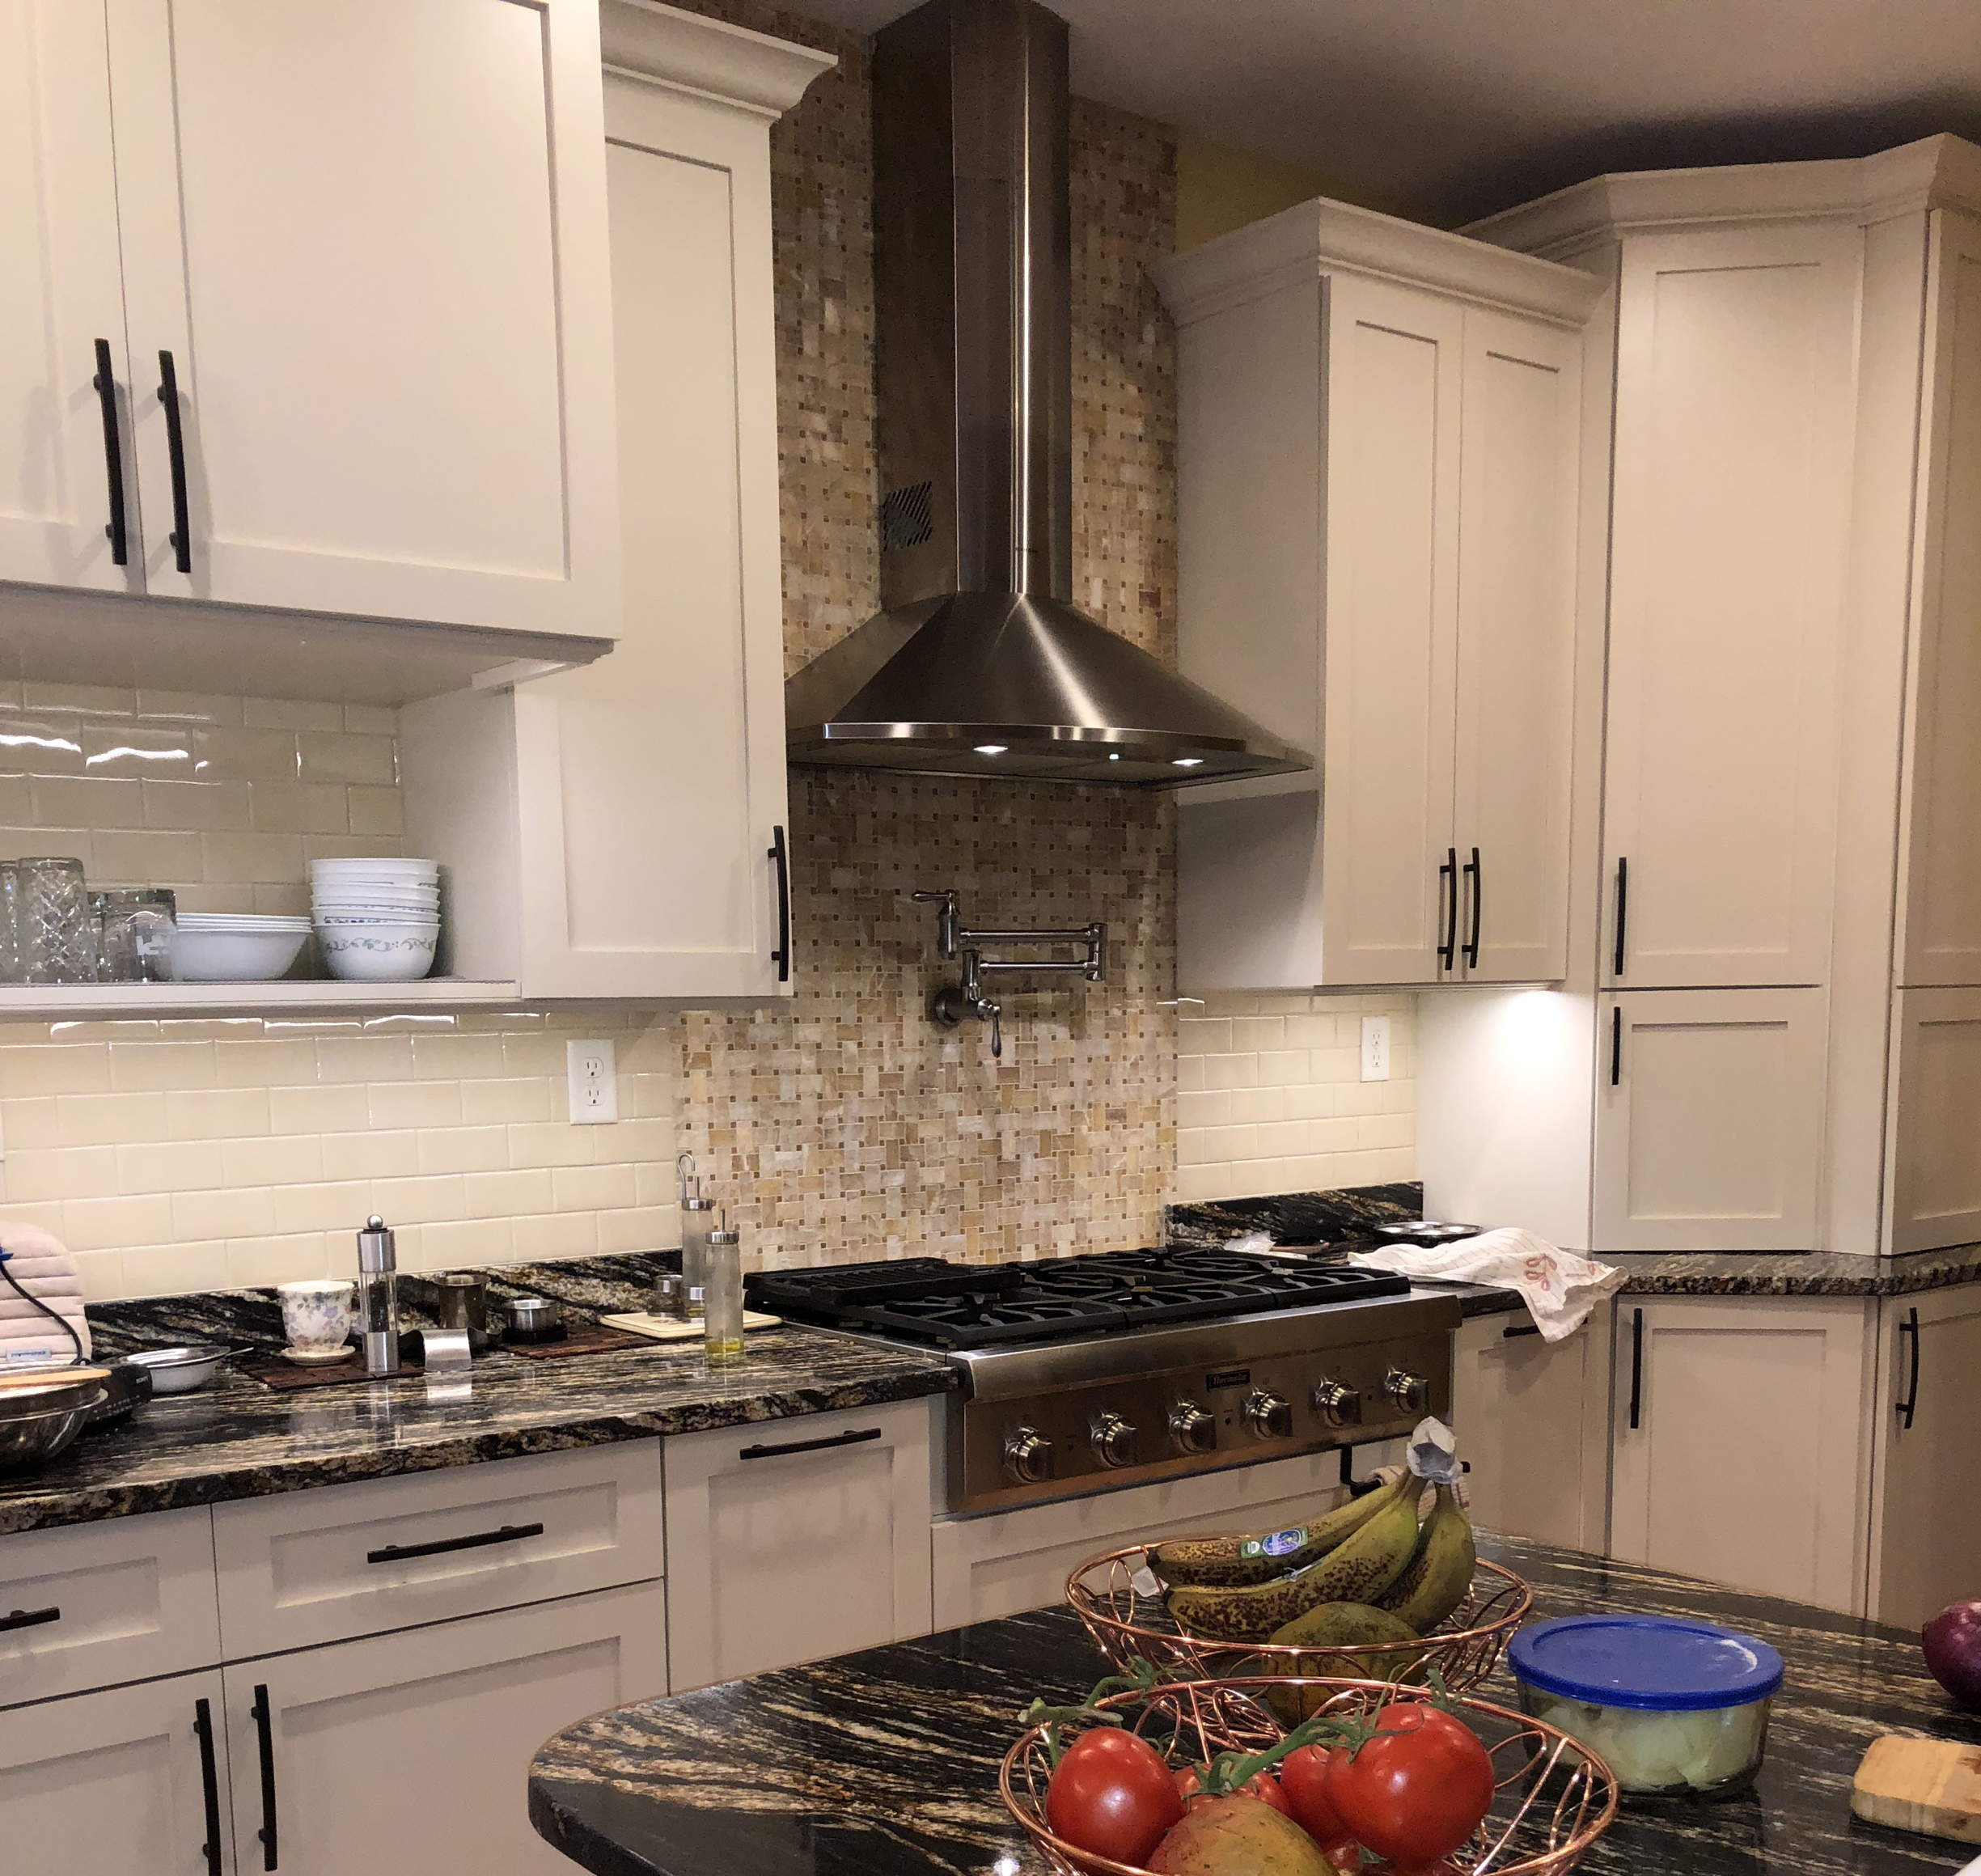 Counterra Custom Kitchens 800.611.6771